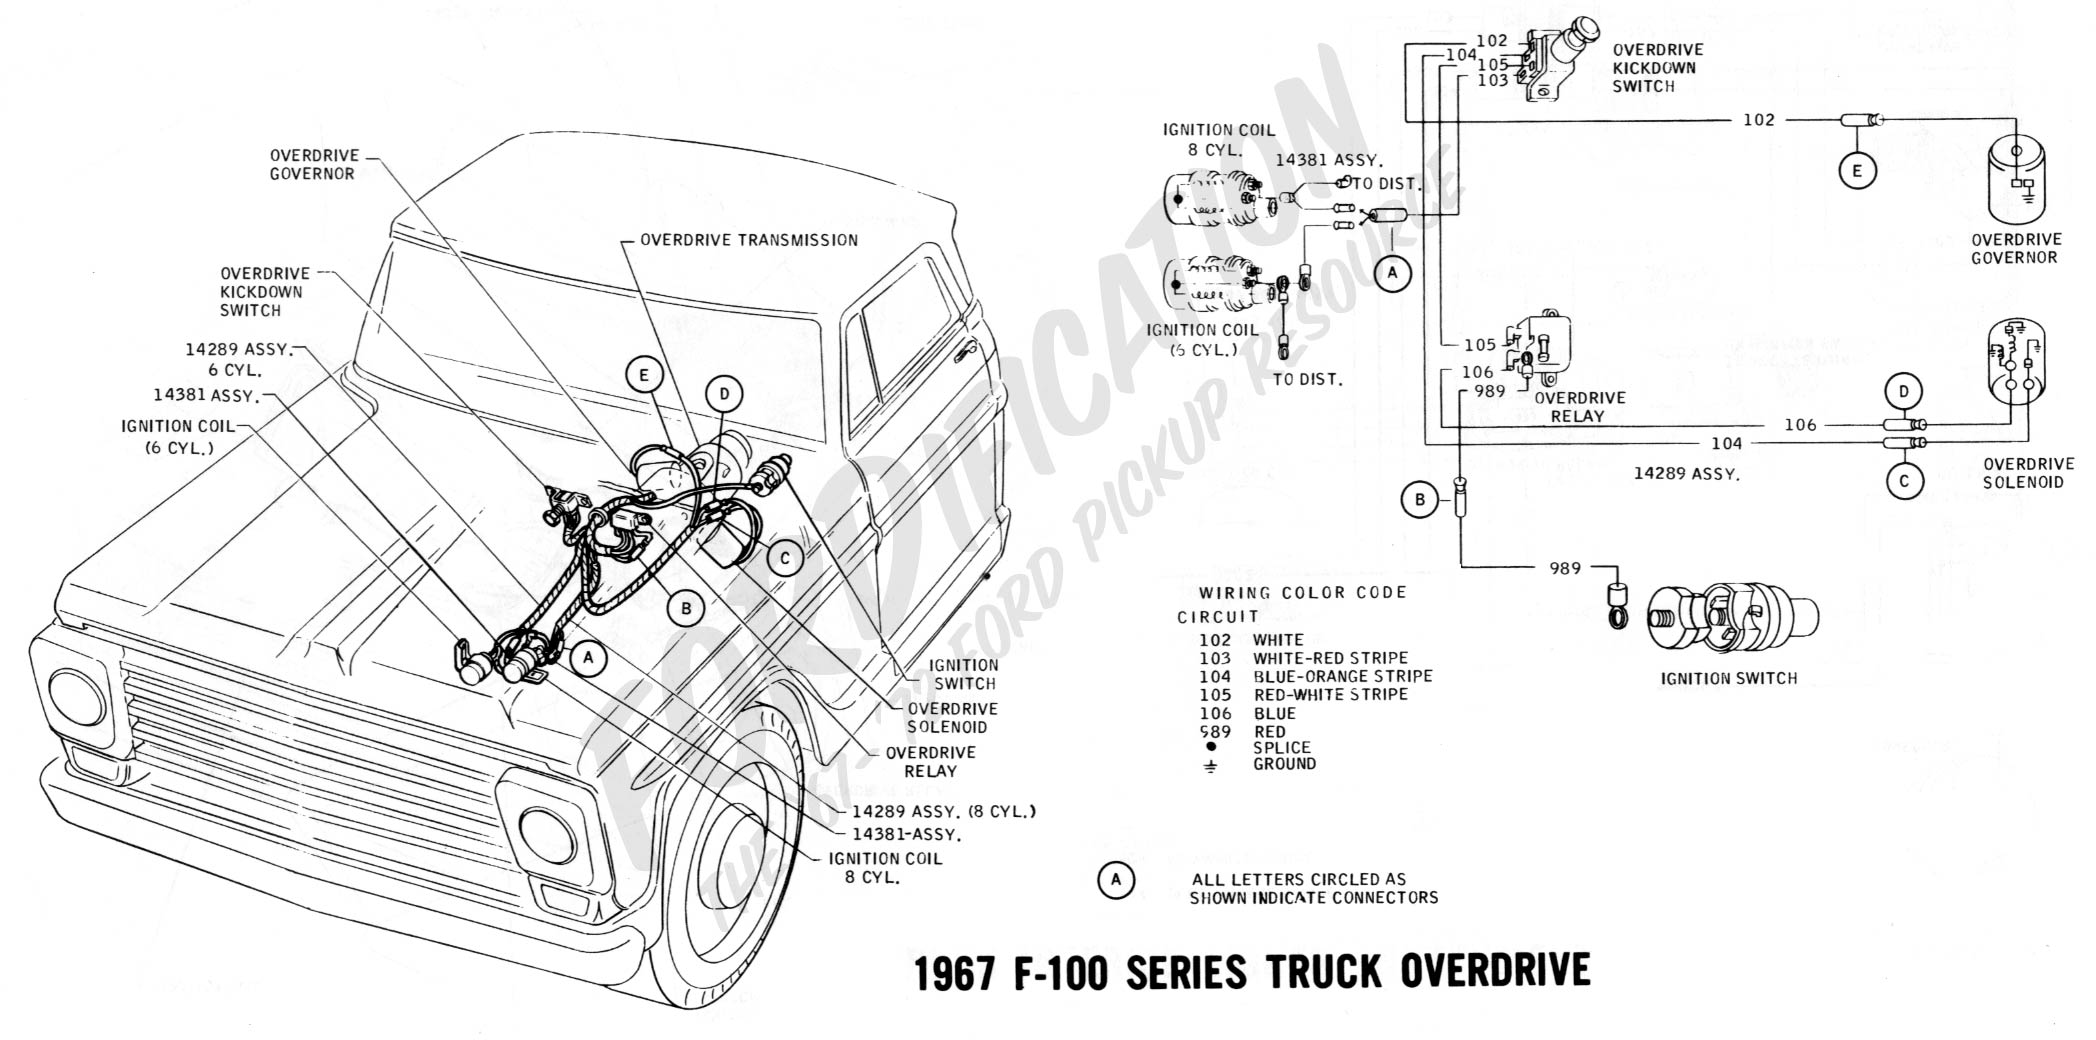 wiring 1967overdrive2 ford truck technical drawings and schematics section h wiring 1972 ford f100 fuse box diagram at soozxer.org